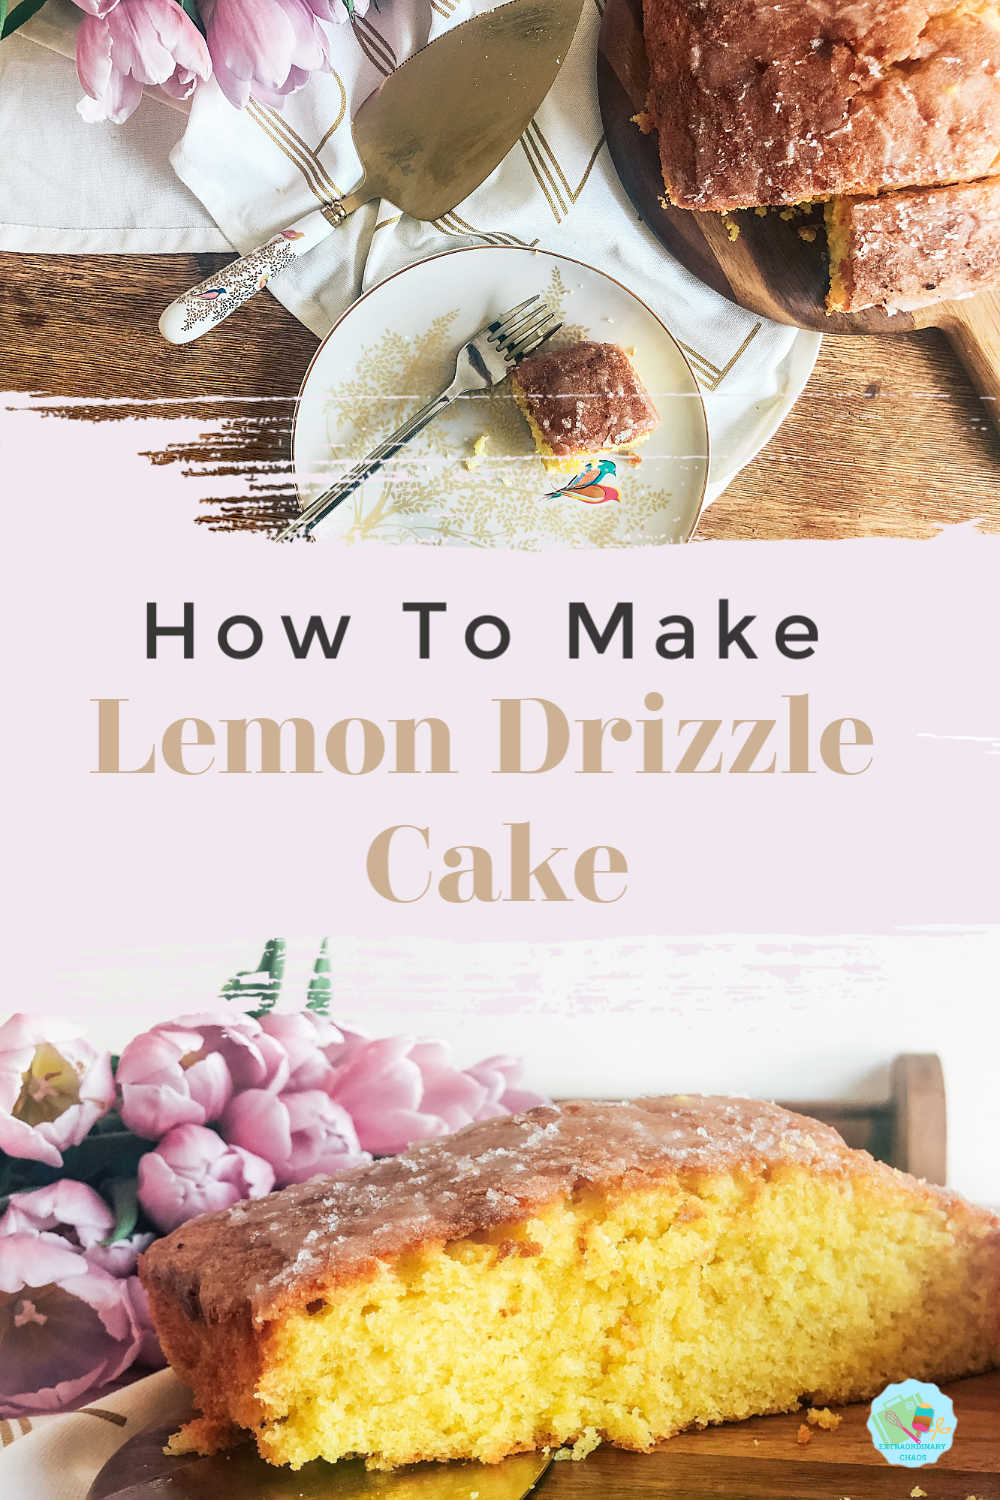 How to make lemon drizzle cake, the perfect sponge cake for afternoon tea #afternoontea #lemoncake #cake #lemondrizzle